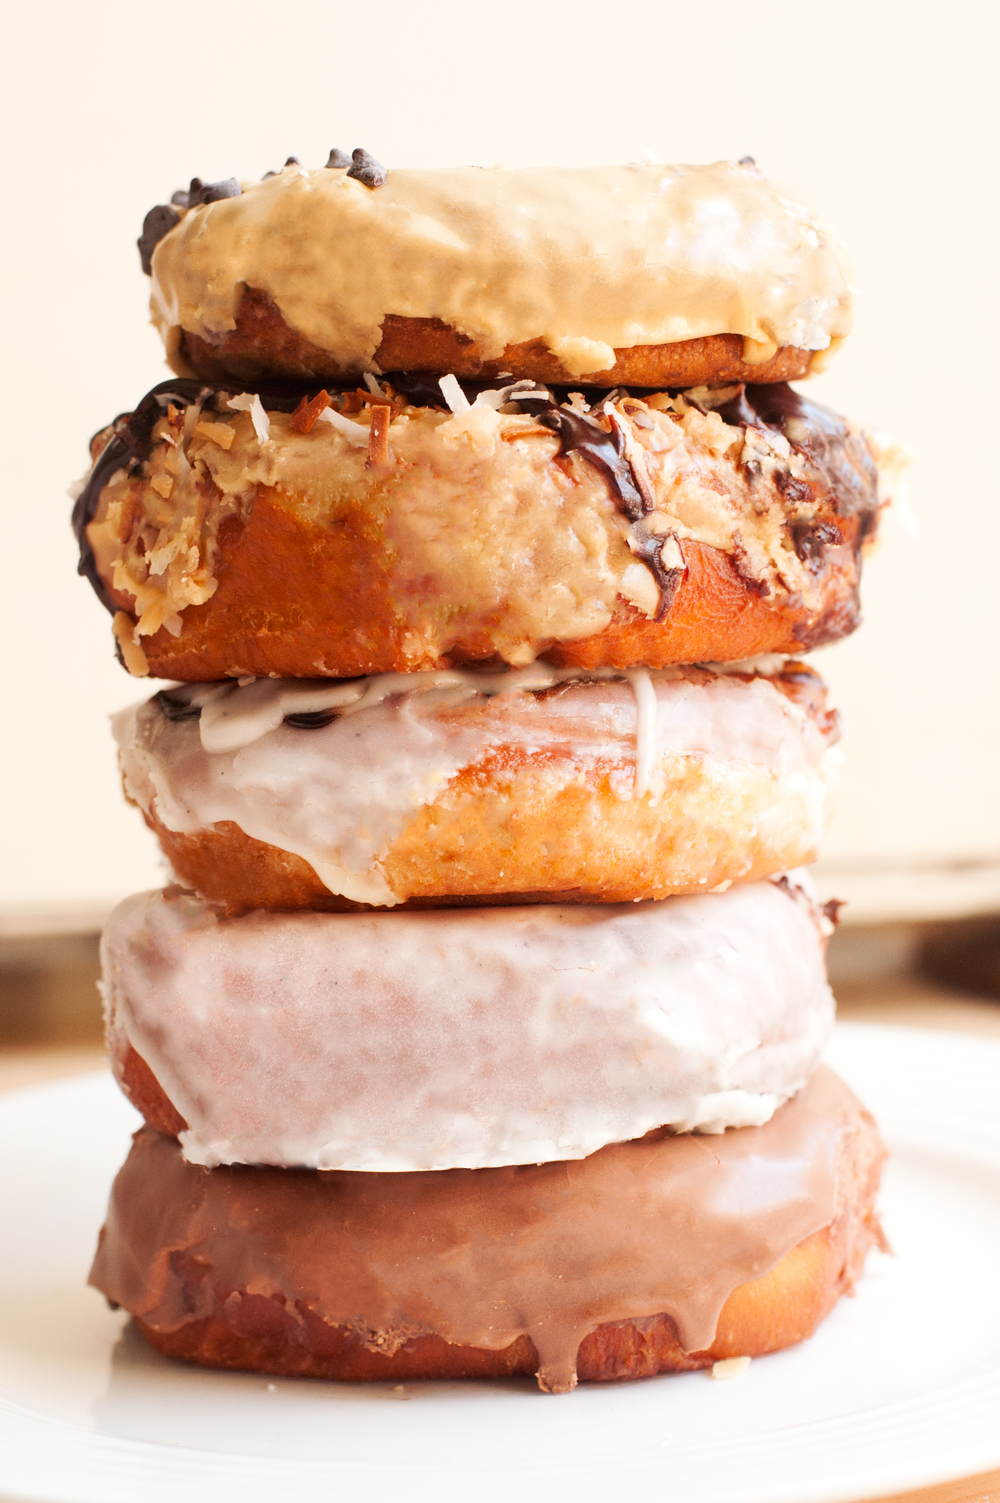 Glazed and Confuzed | SFB National Doughnut Tour